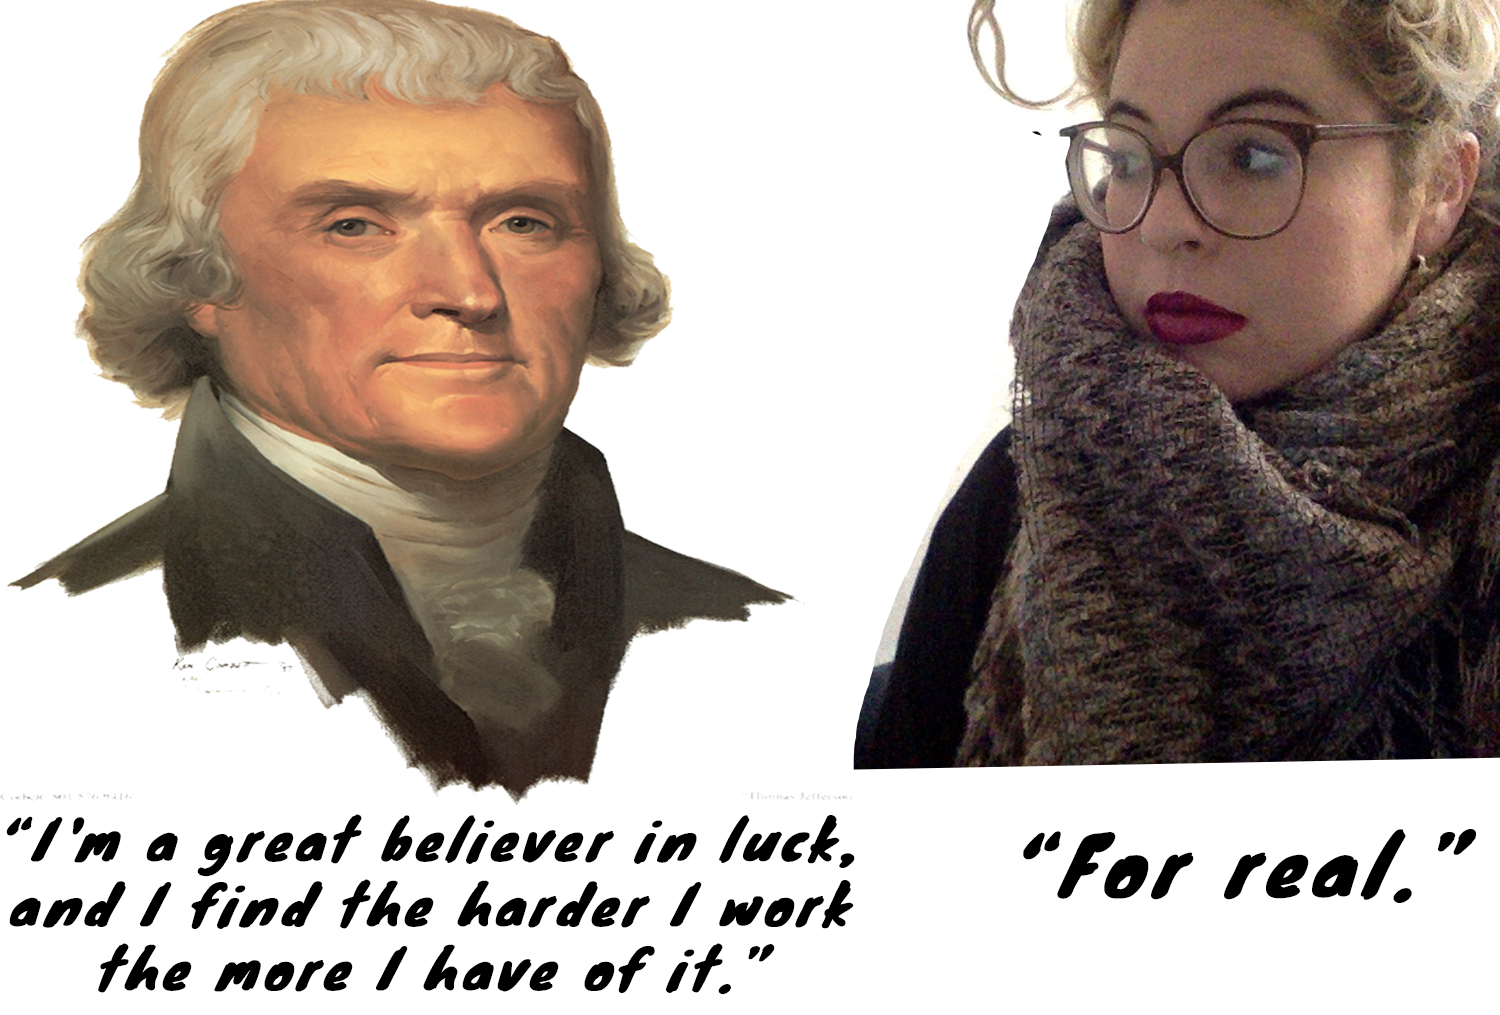 In conversation with Thomas Jefferson